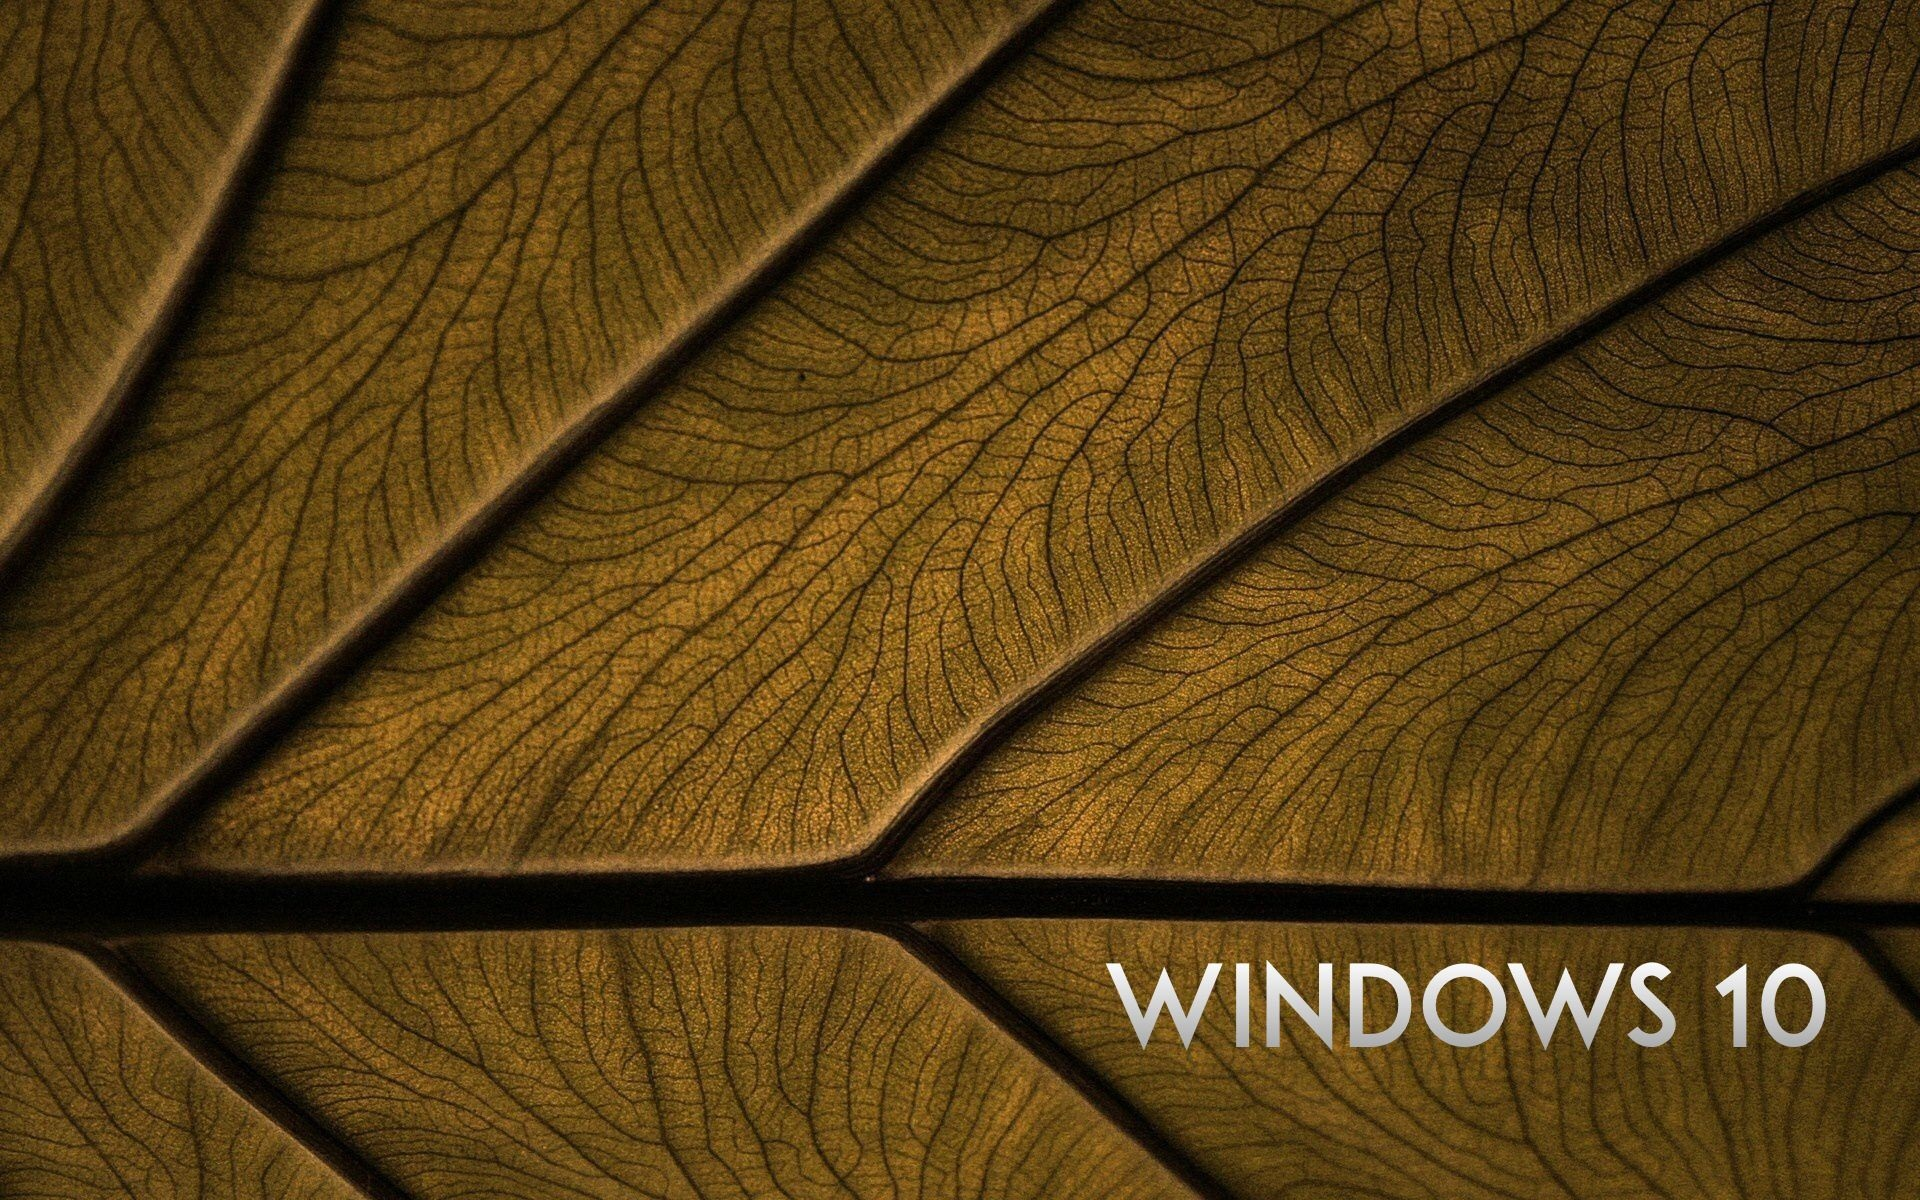 wallpaper windows 10 system leaf background 1920x1200 hd picture image